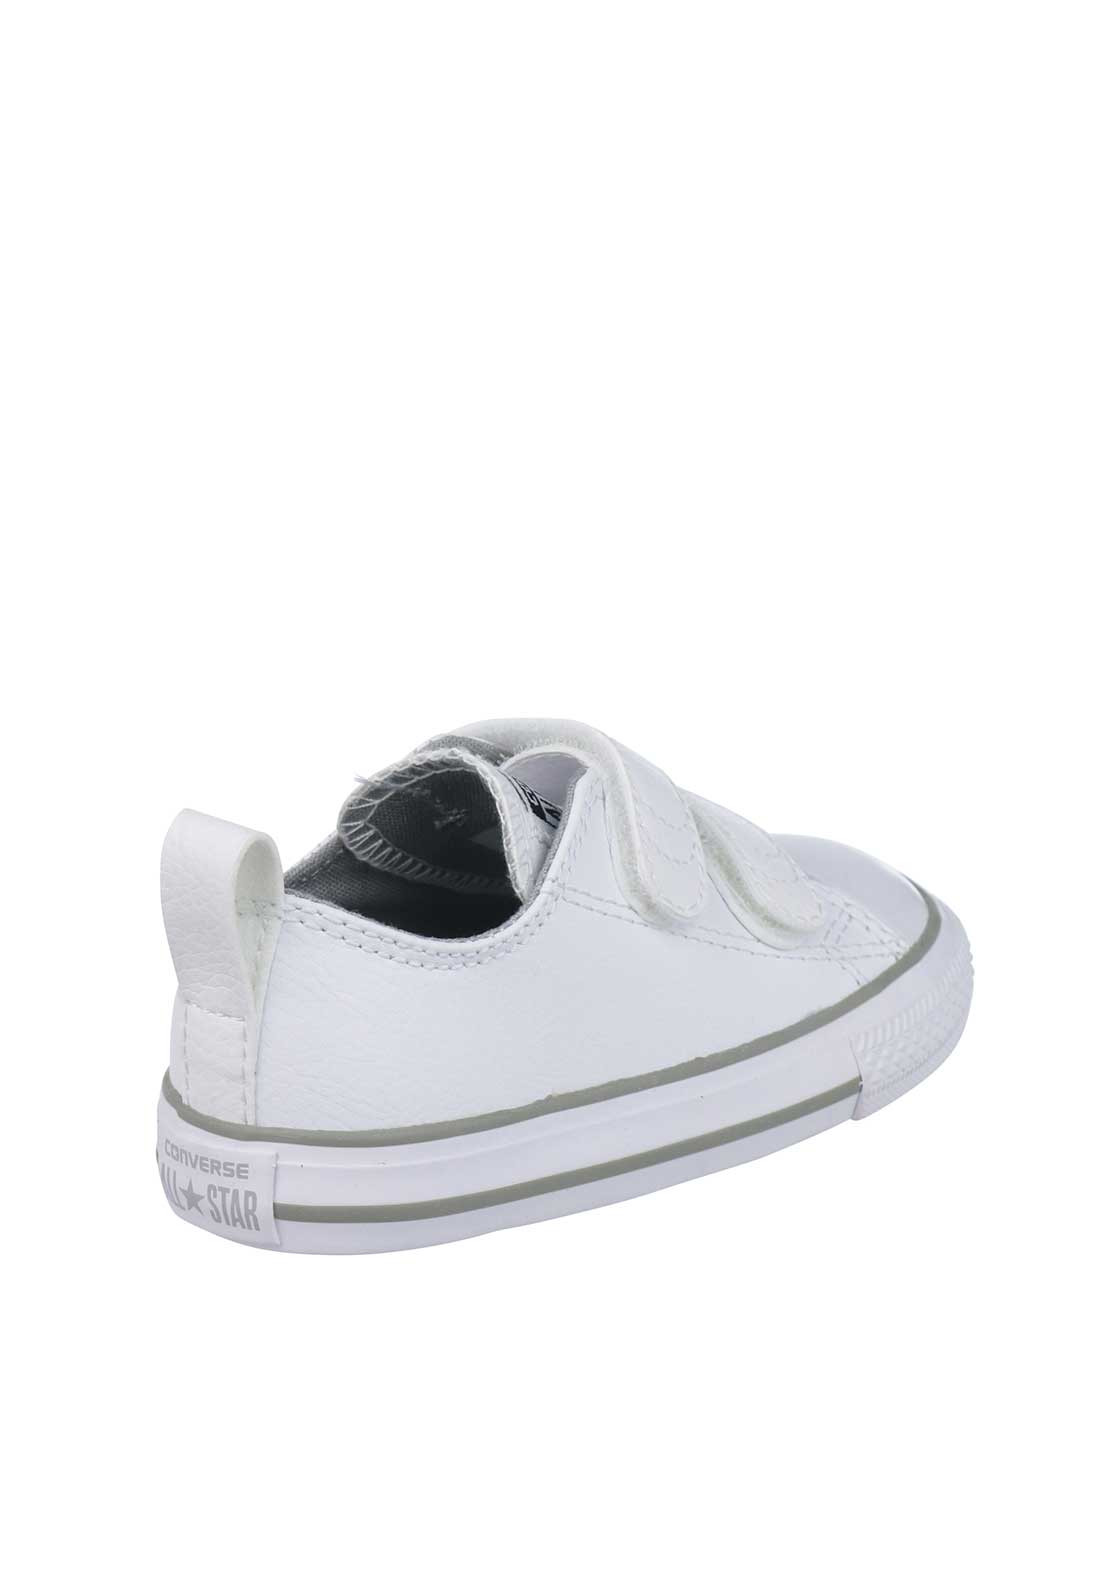 57bd4735b7b3 Converse Baby All Star Velcro Leather Trainers